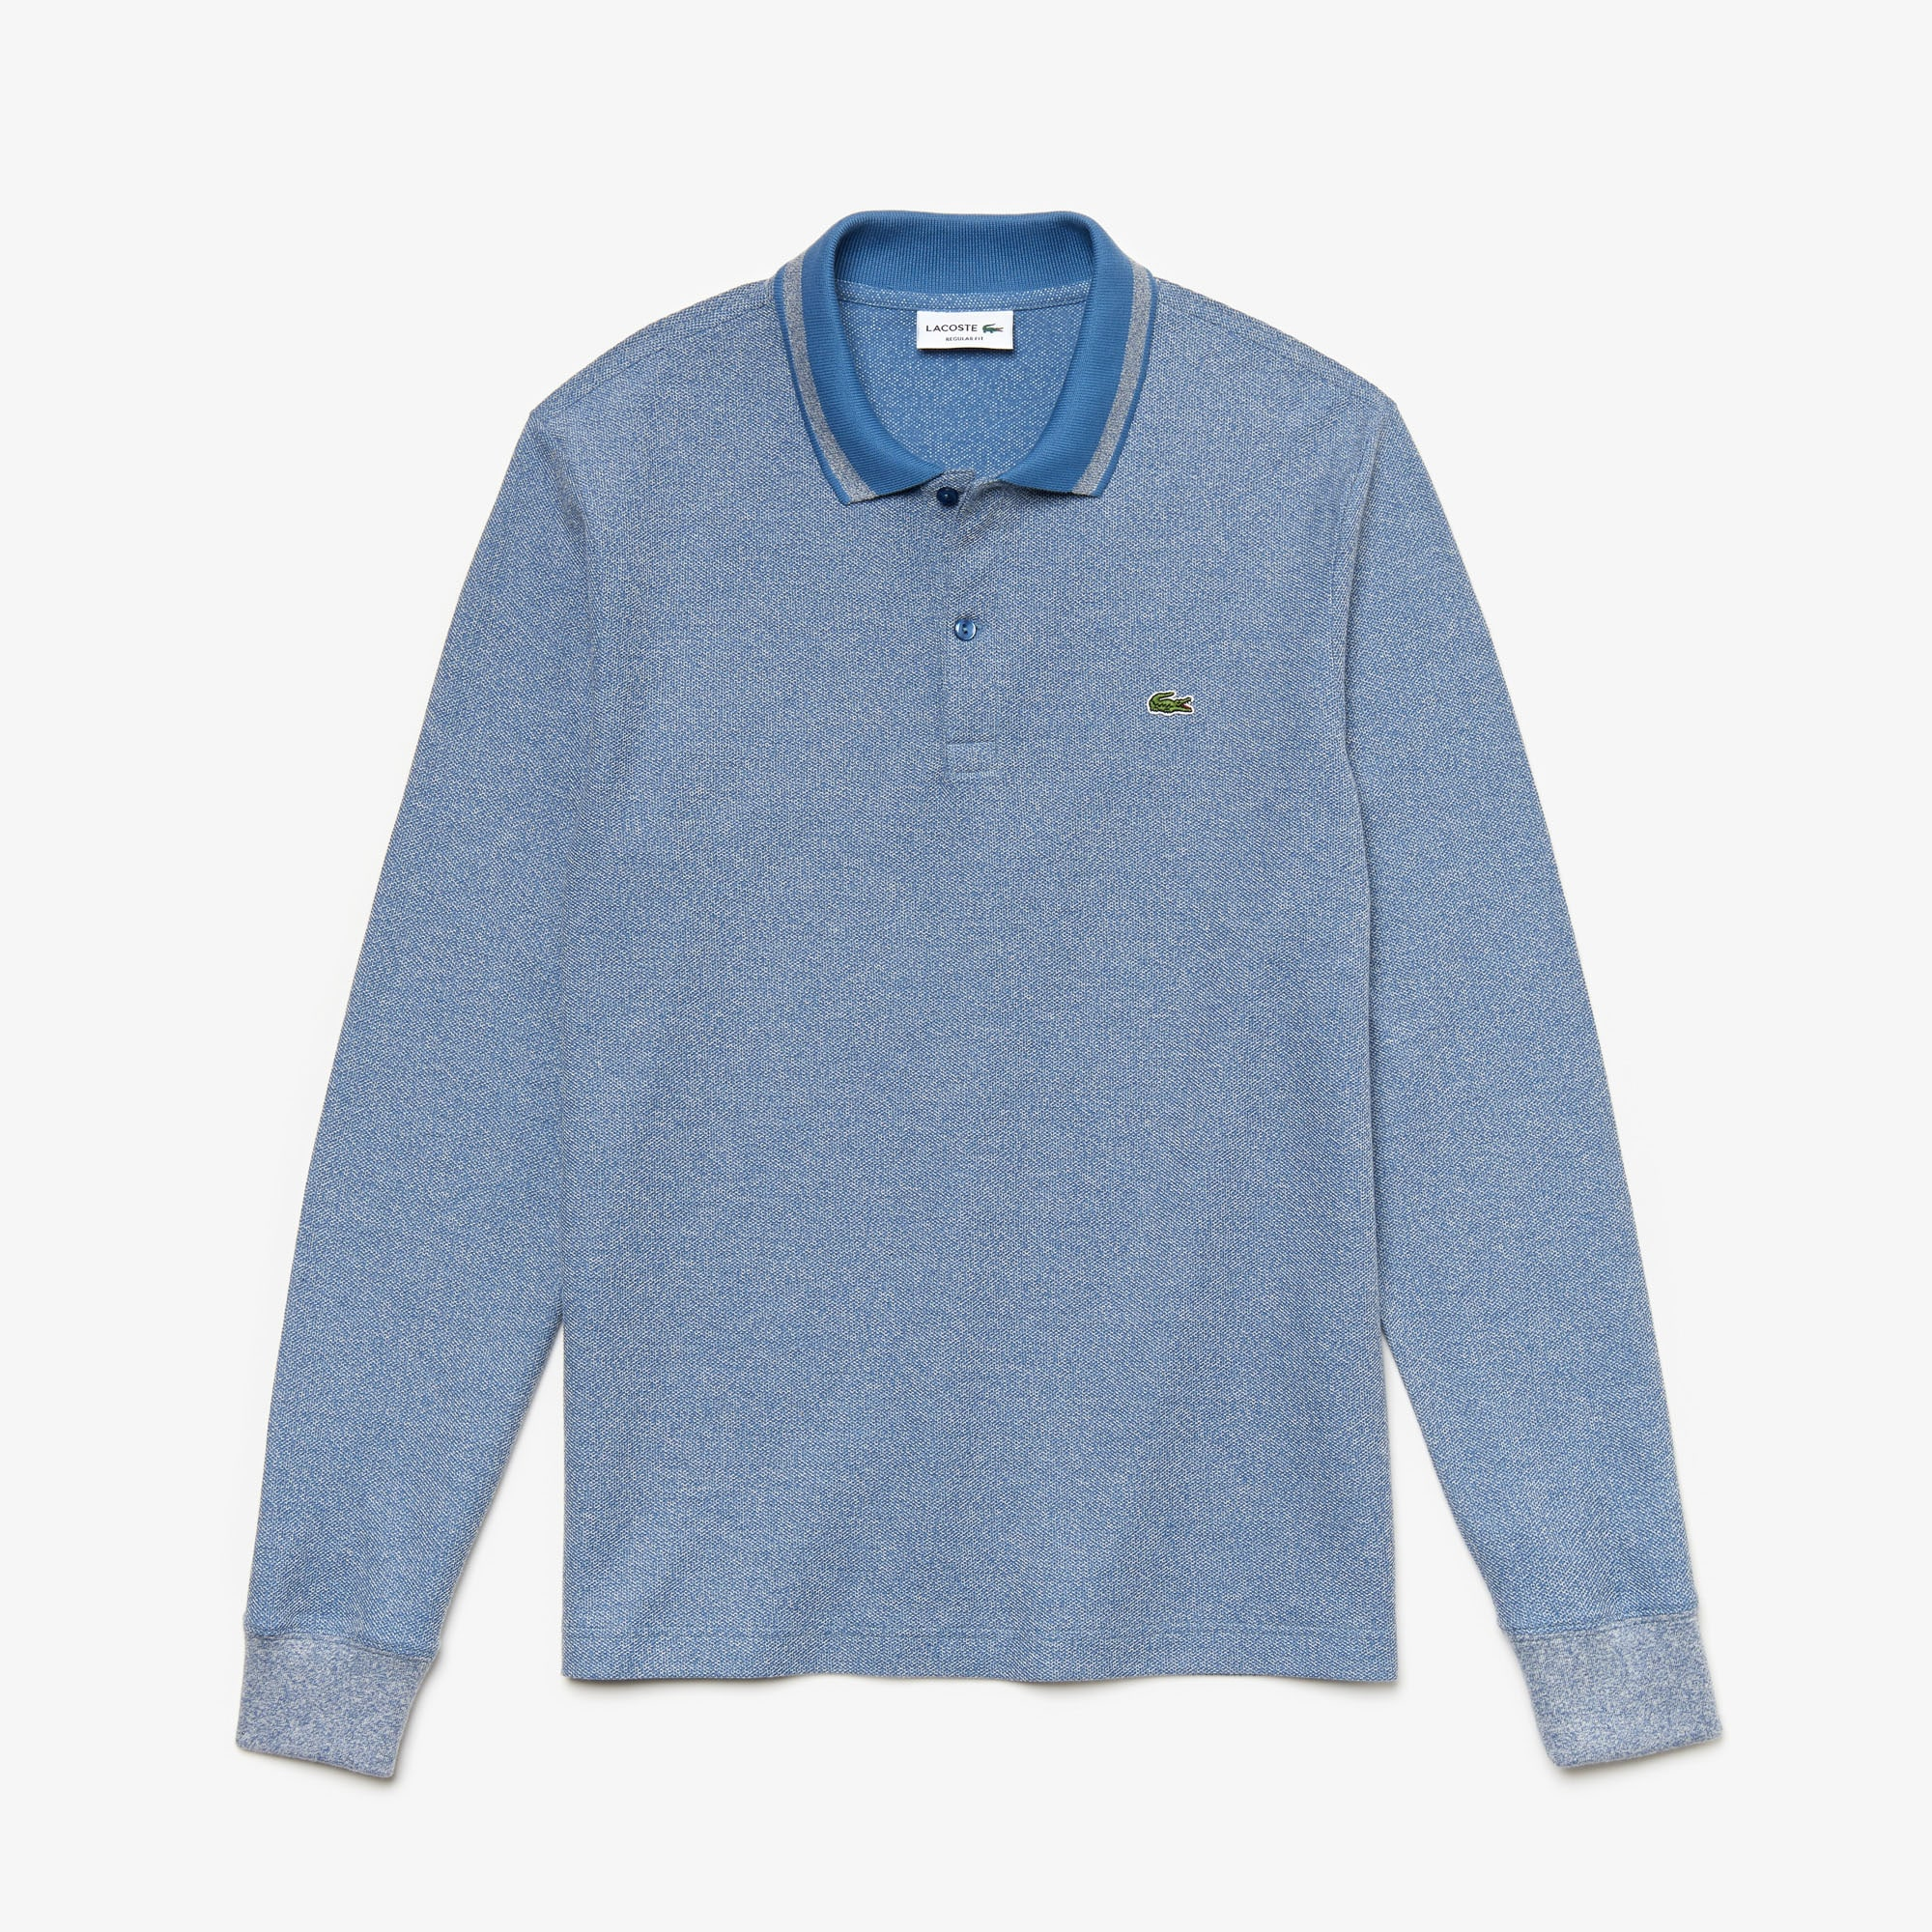 8a98210d53 Men's Lacoste Regular Fit Heathered Piqué Polo Shirt